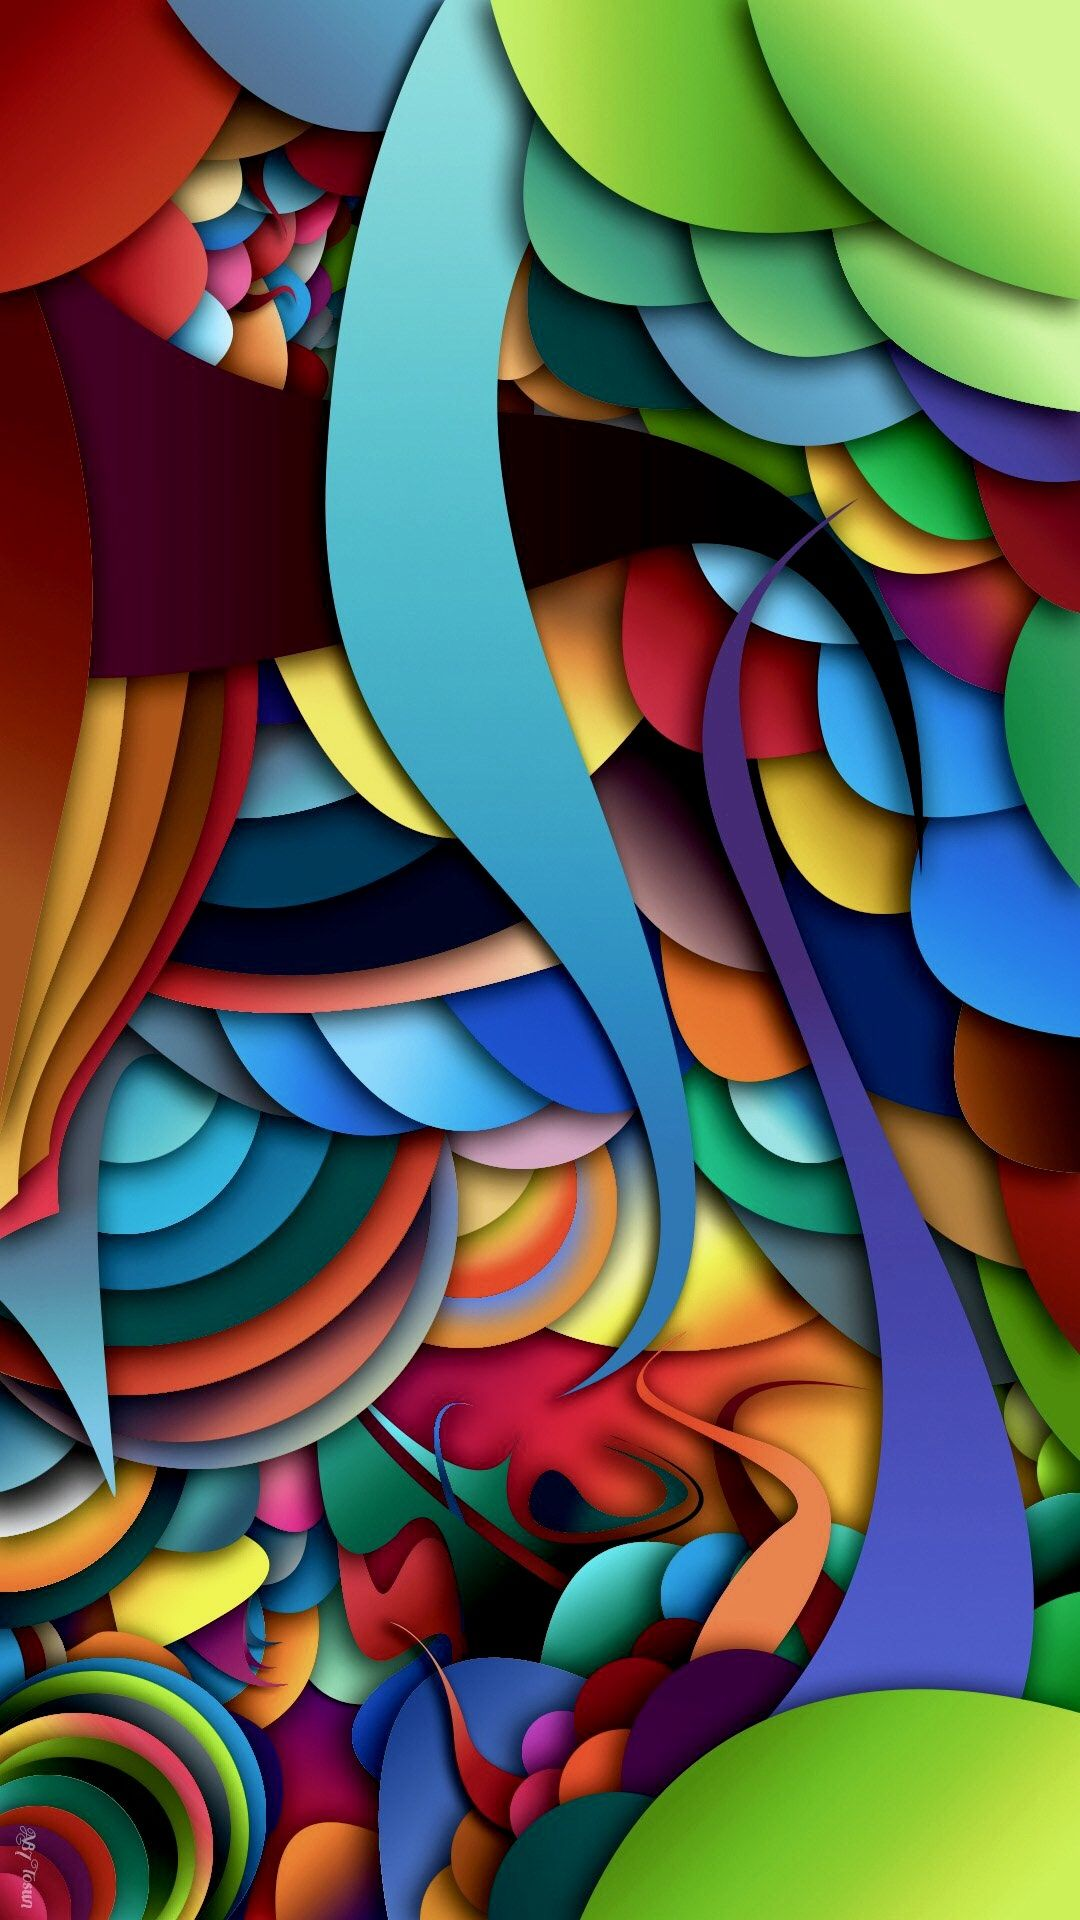 Colorful Abstract Geometric Wallpaper Live wallpapers